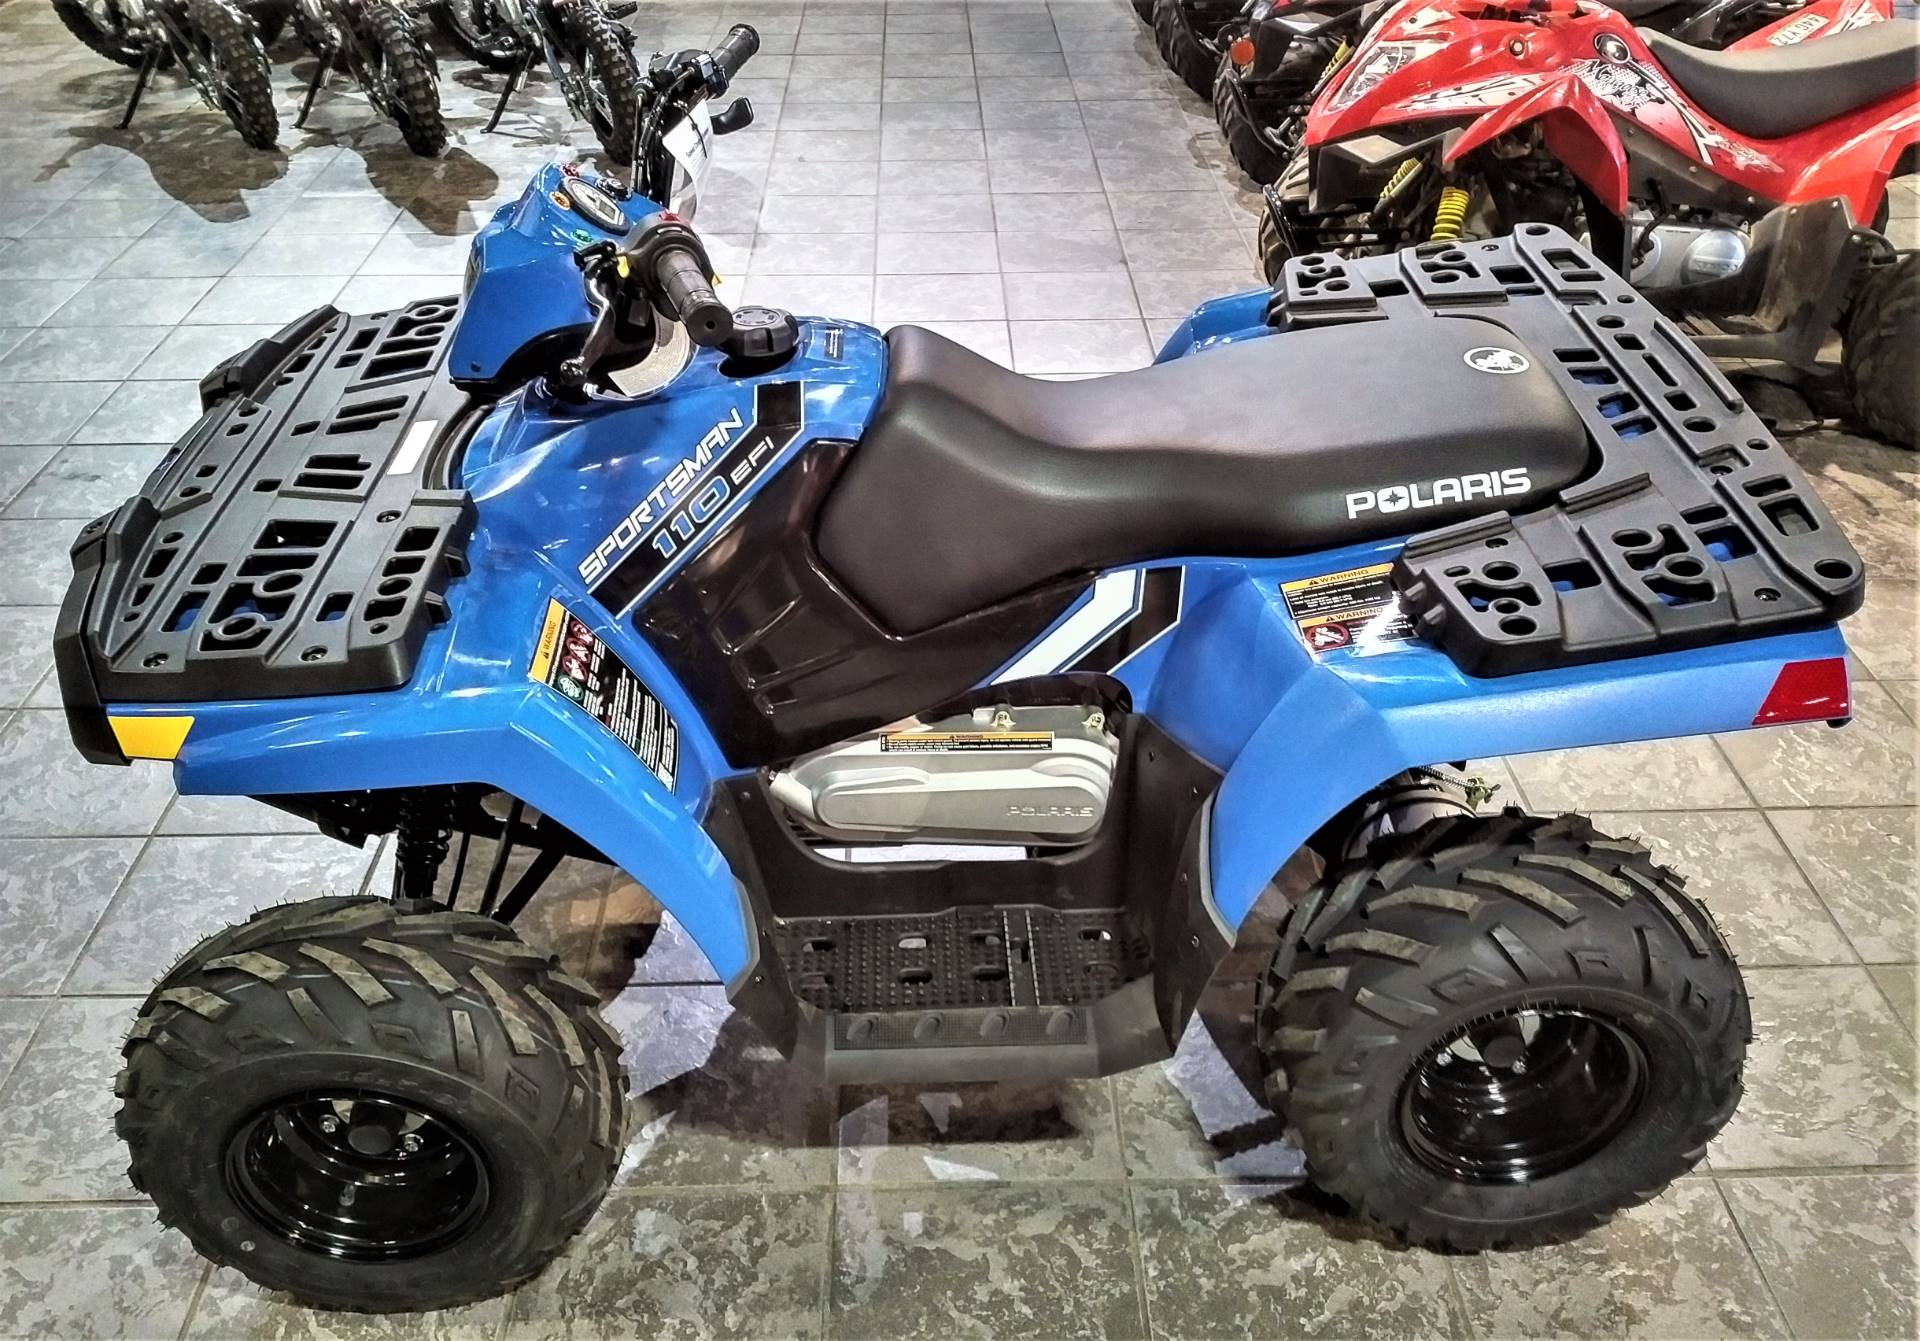 2021 Polaris Sportsman 110 EFI in Salinas, California - Photo 11